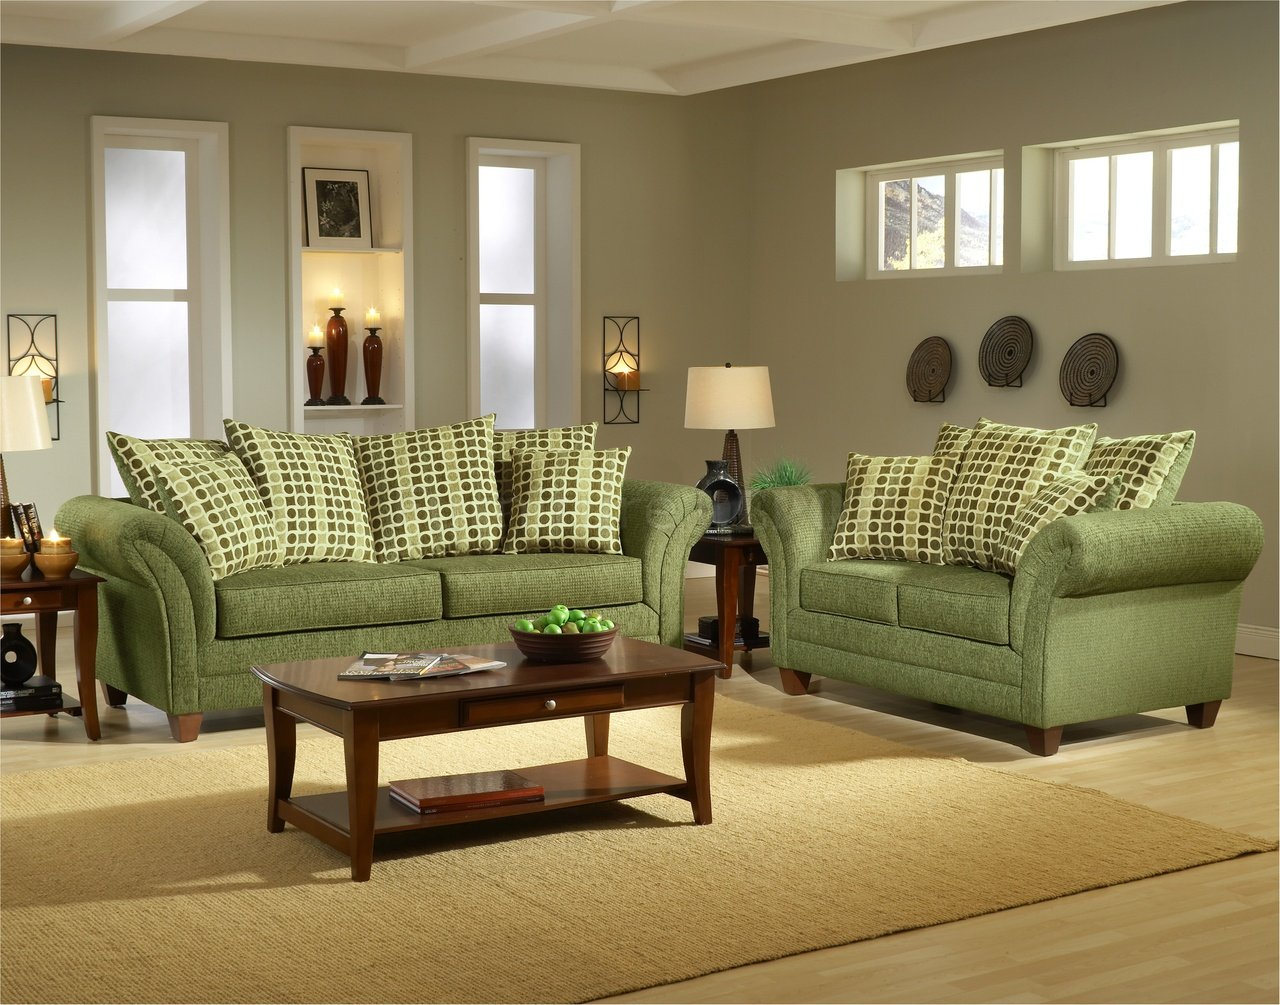 Green Sofas And Eco Friendly Furniture: Astonishing Modern Artistic Green Sofas Gray Interior Room Design